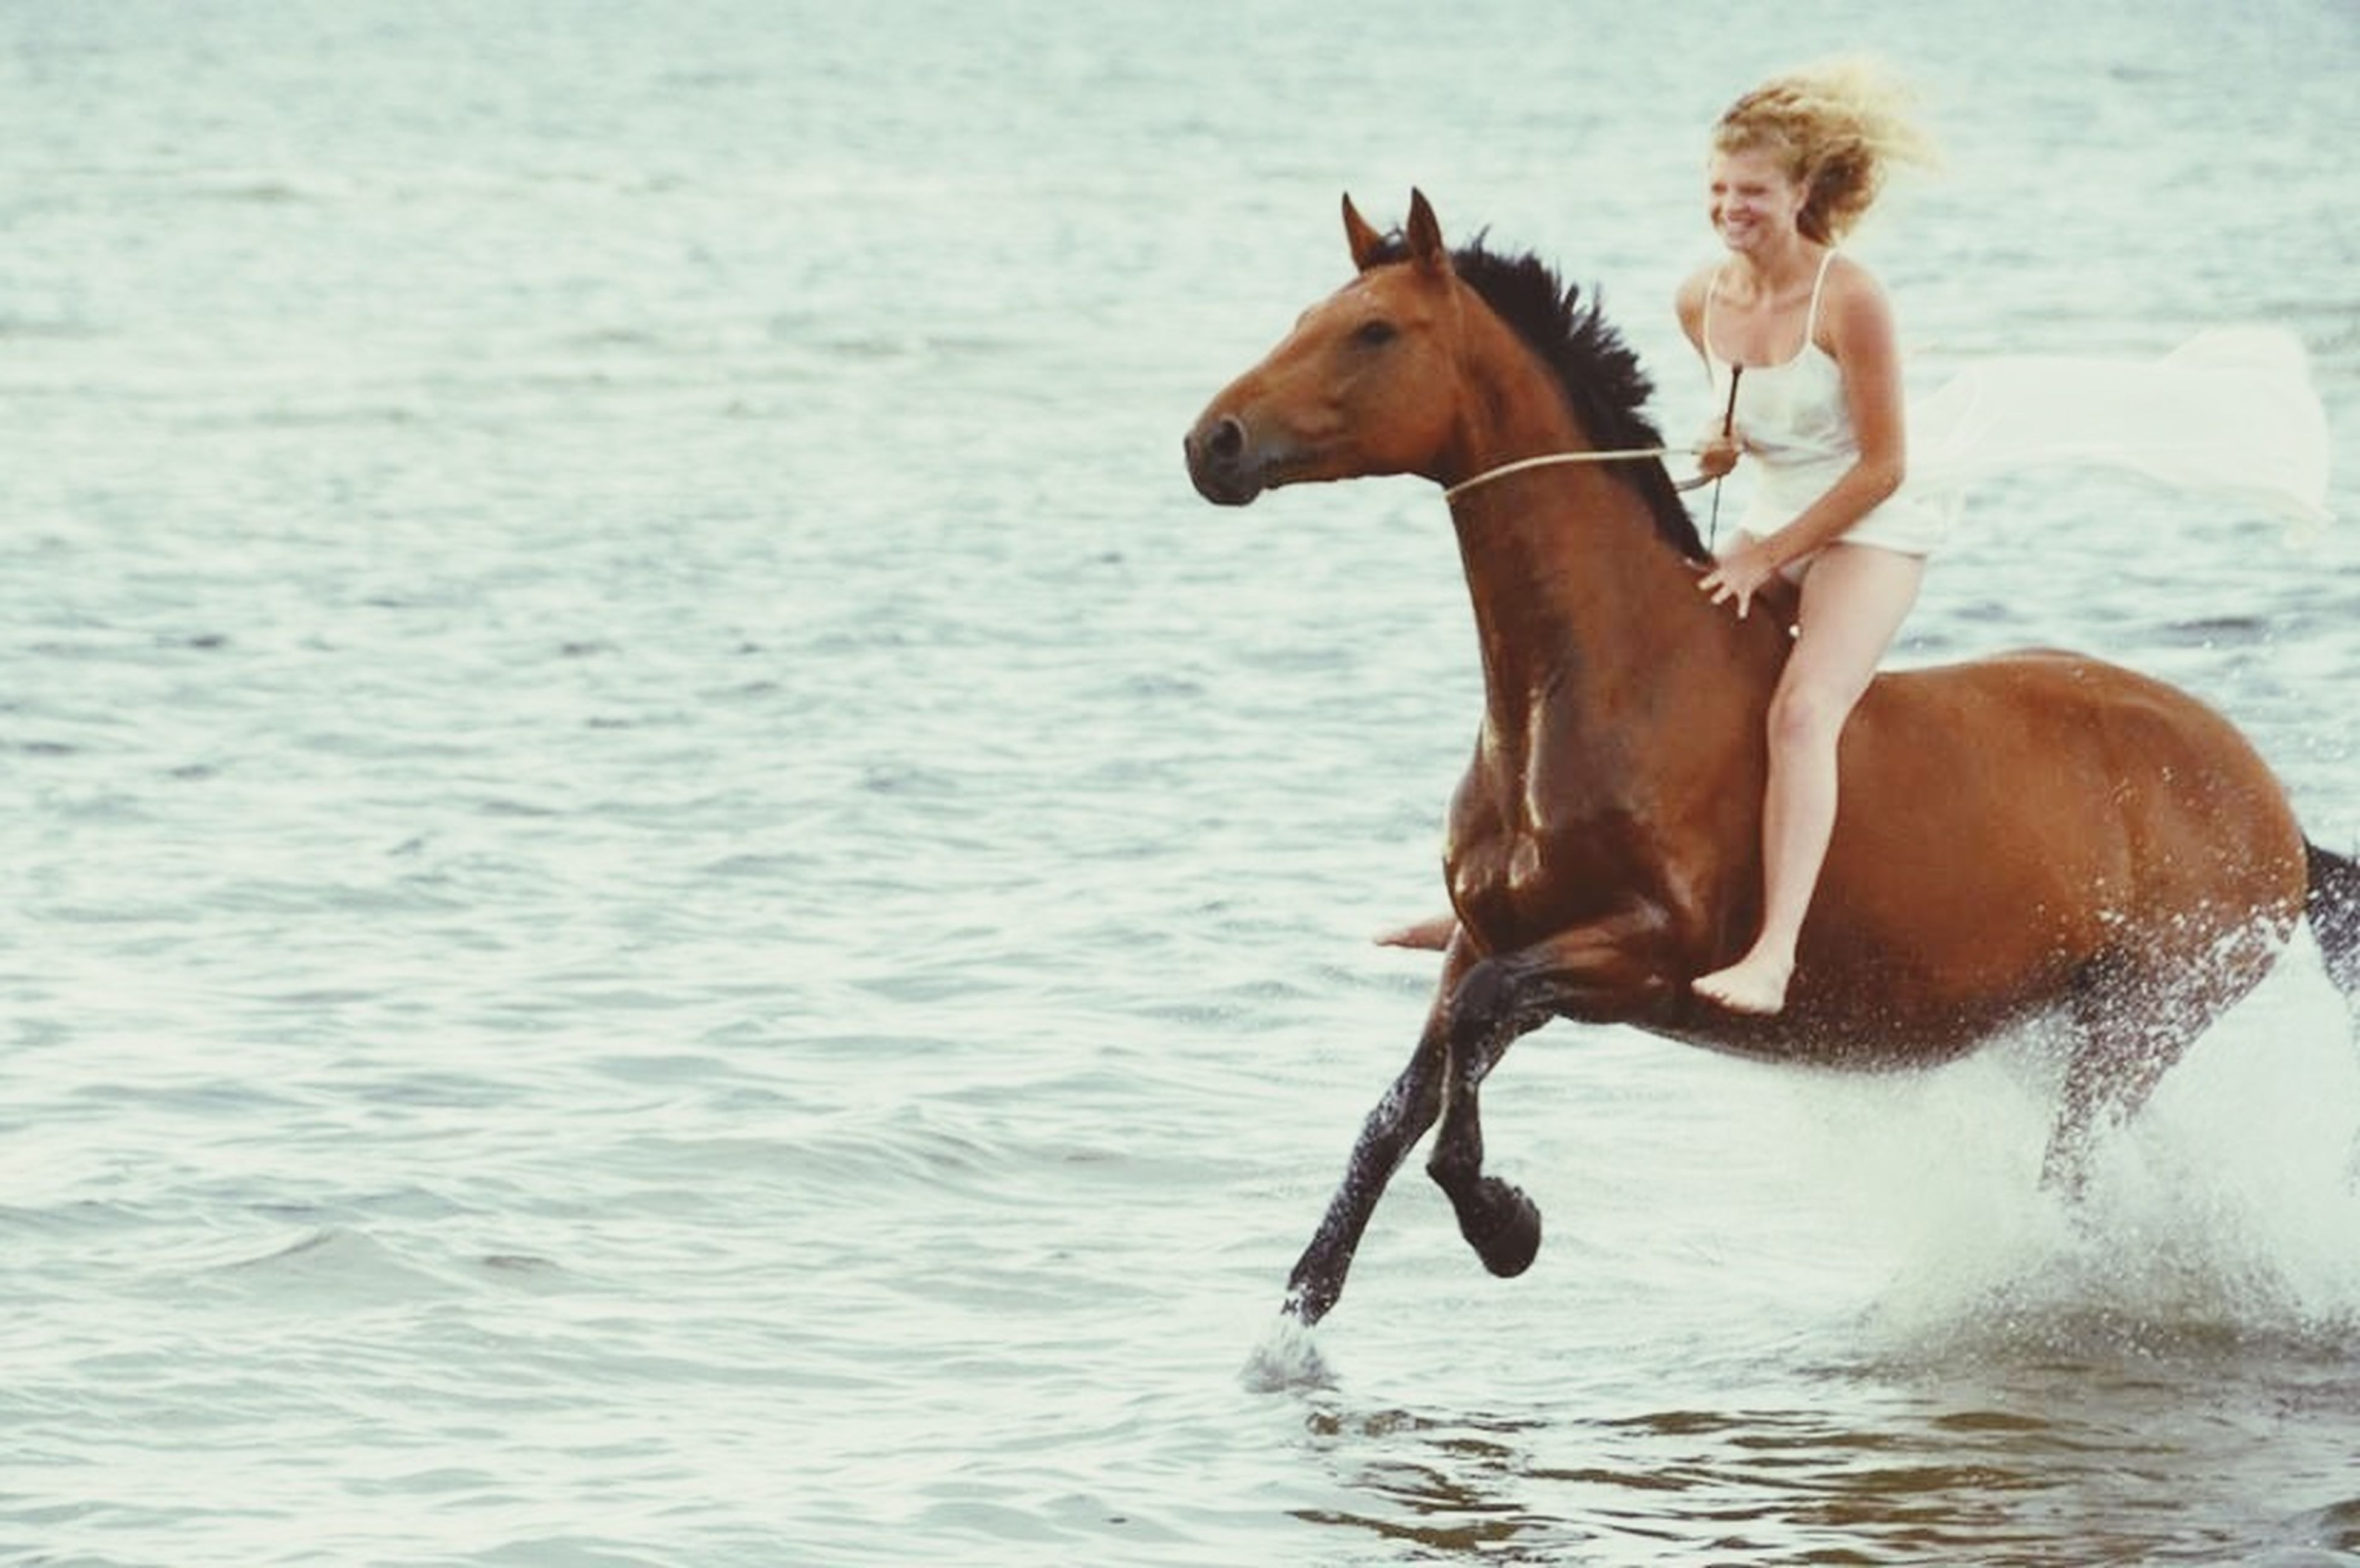 water, animal themes, domestic animals, mammal, sea, one animal, waterfront, full length, dog, leisure activity, lifestyles, motion, pets, jumping, running, horse, side view, shirtless